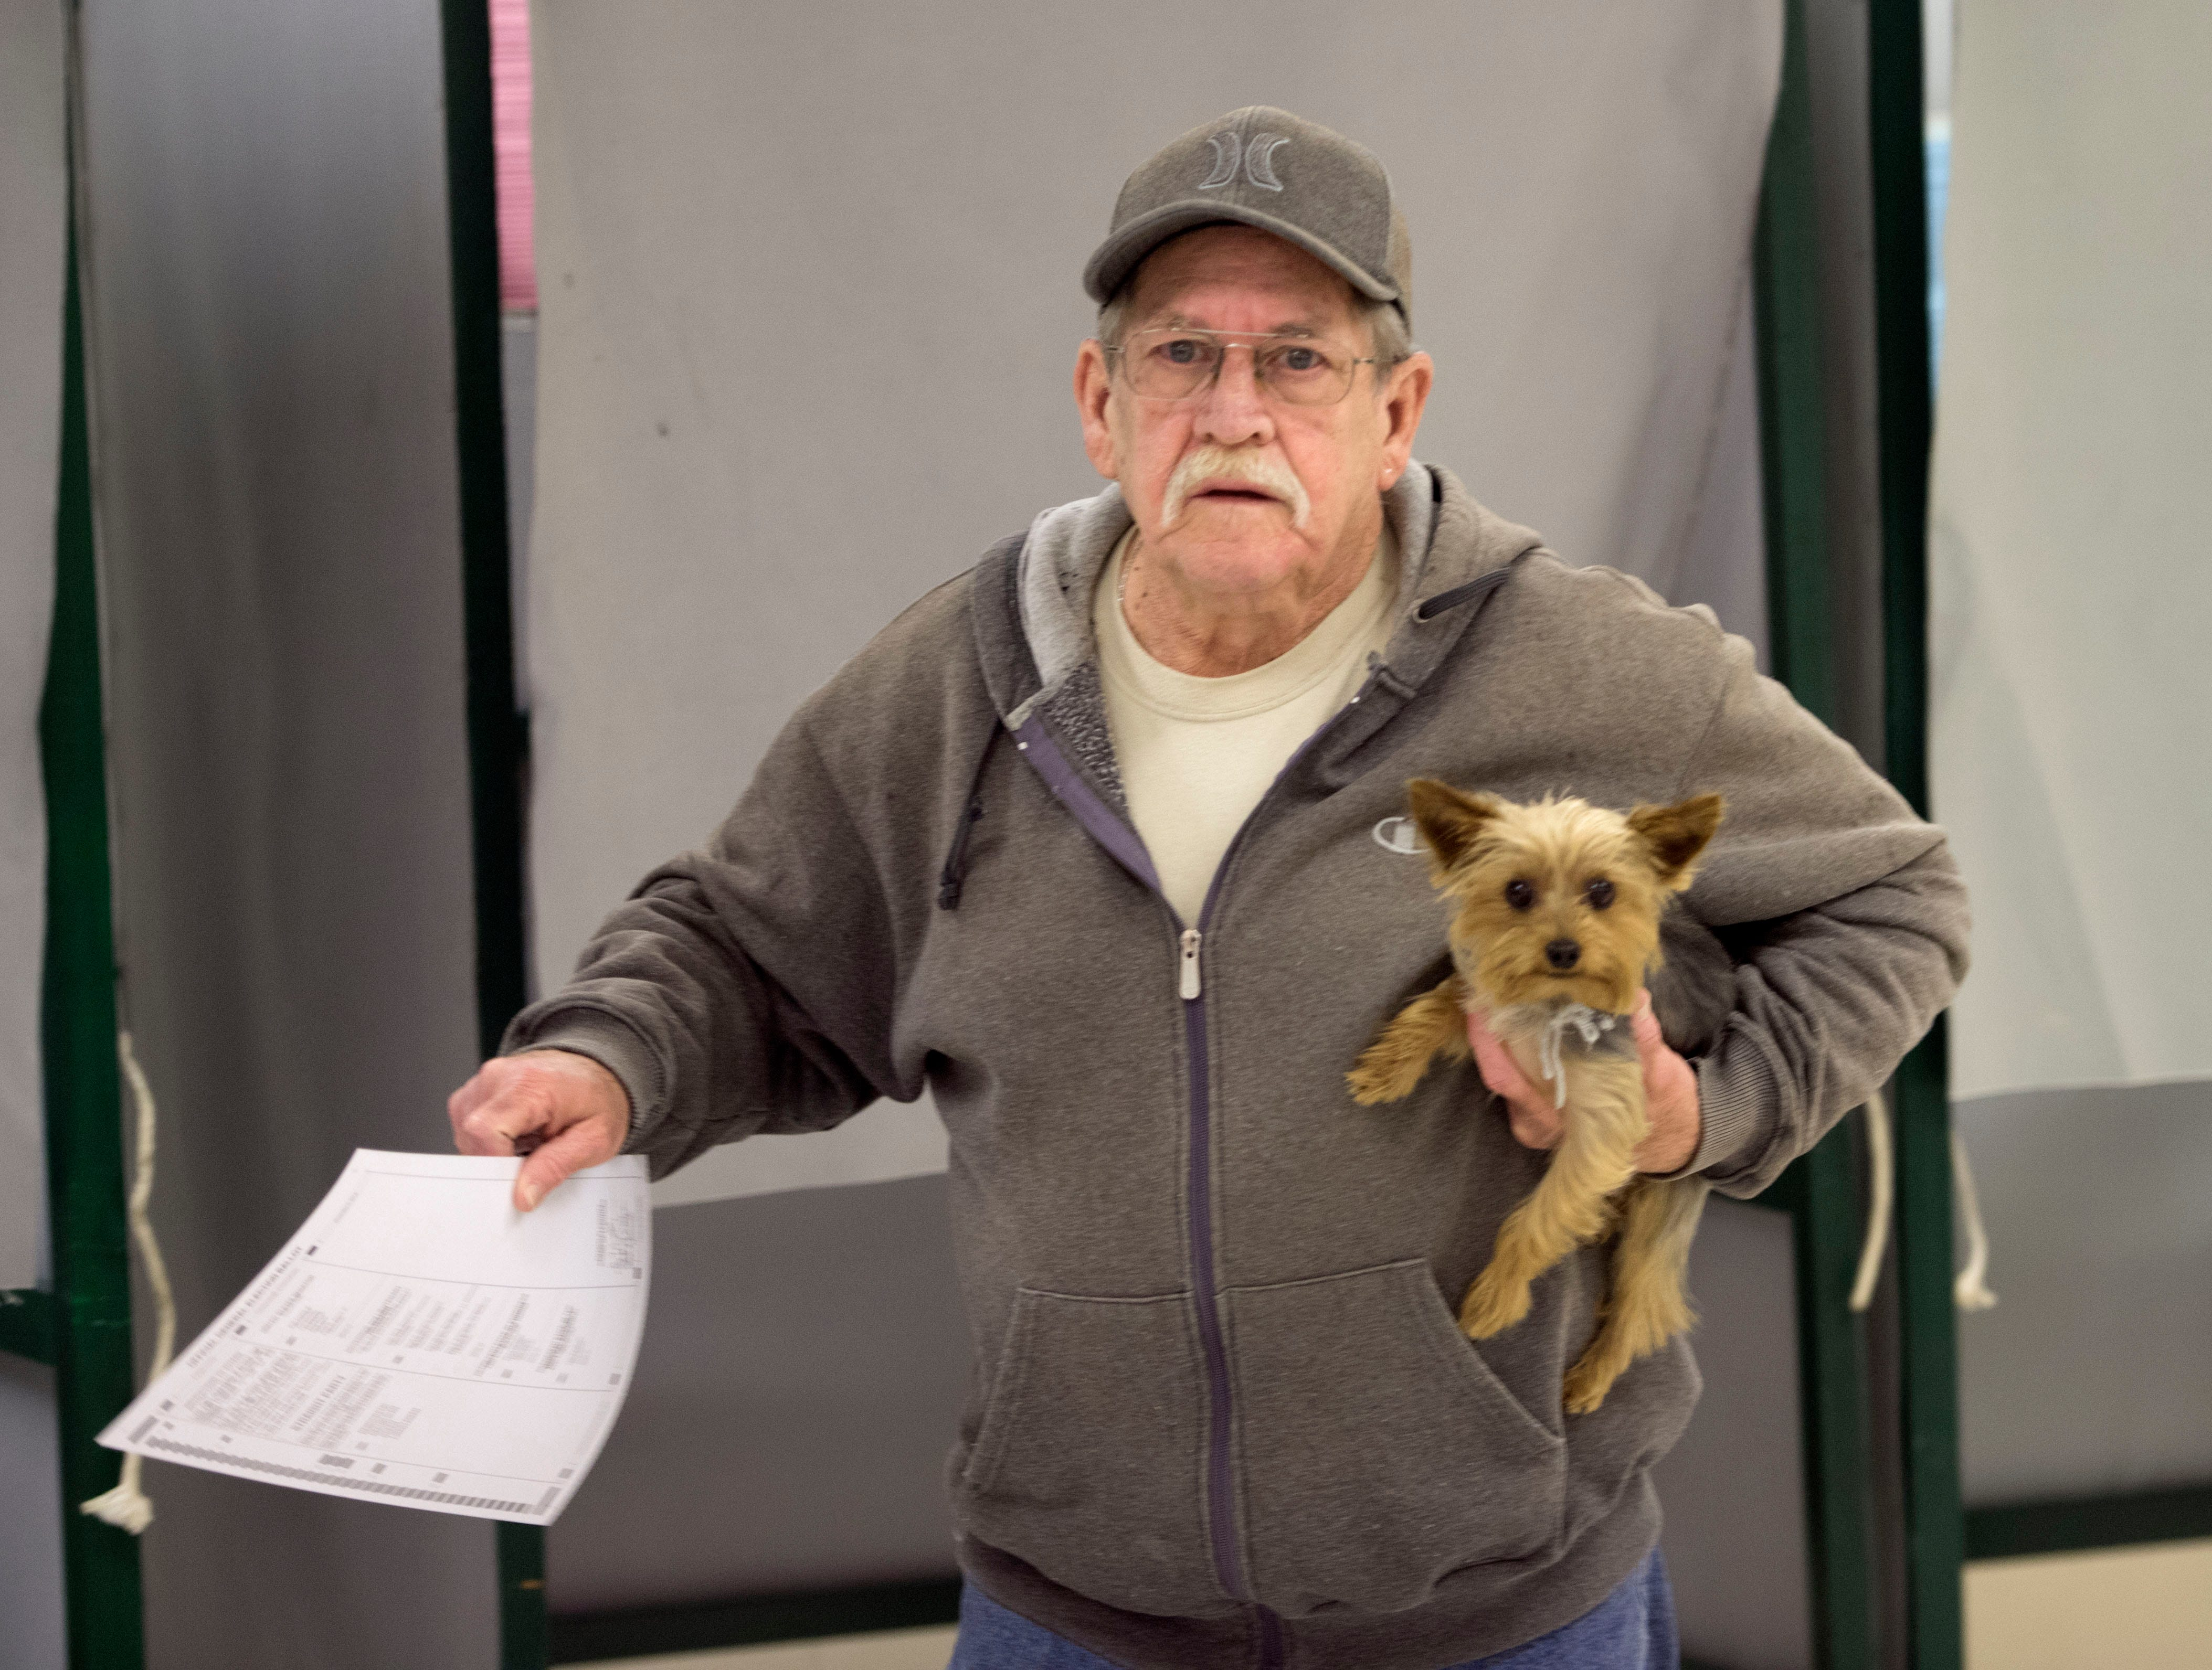 Terry Shew brought along his dog, Braxtyn, as he voted on Tuesday, November 6, 2018. Voters are casting their ballots on Election Day 2018 at Eugene C. Clarke Community Center, Chambersburg.